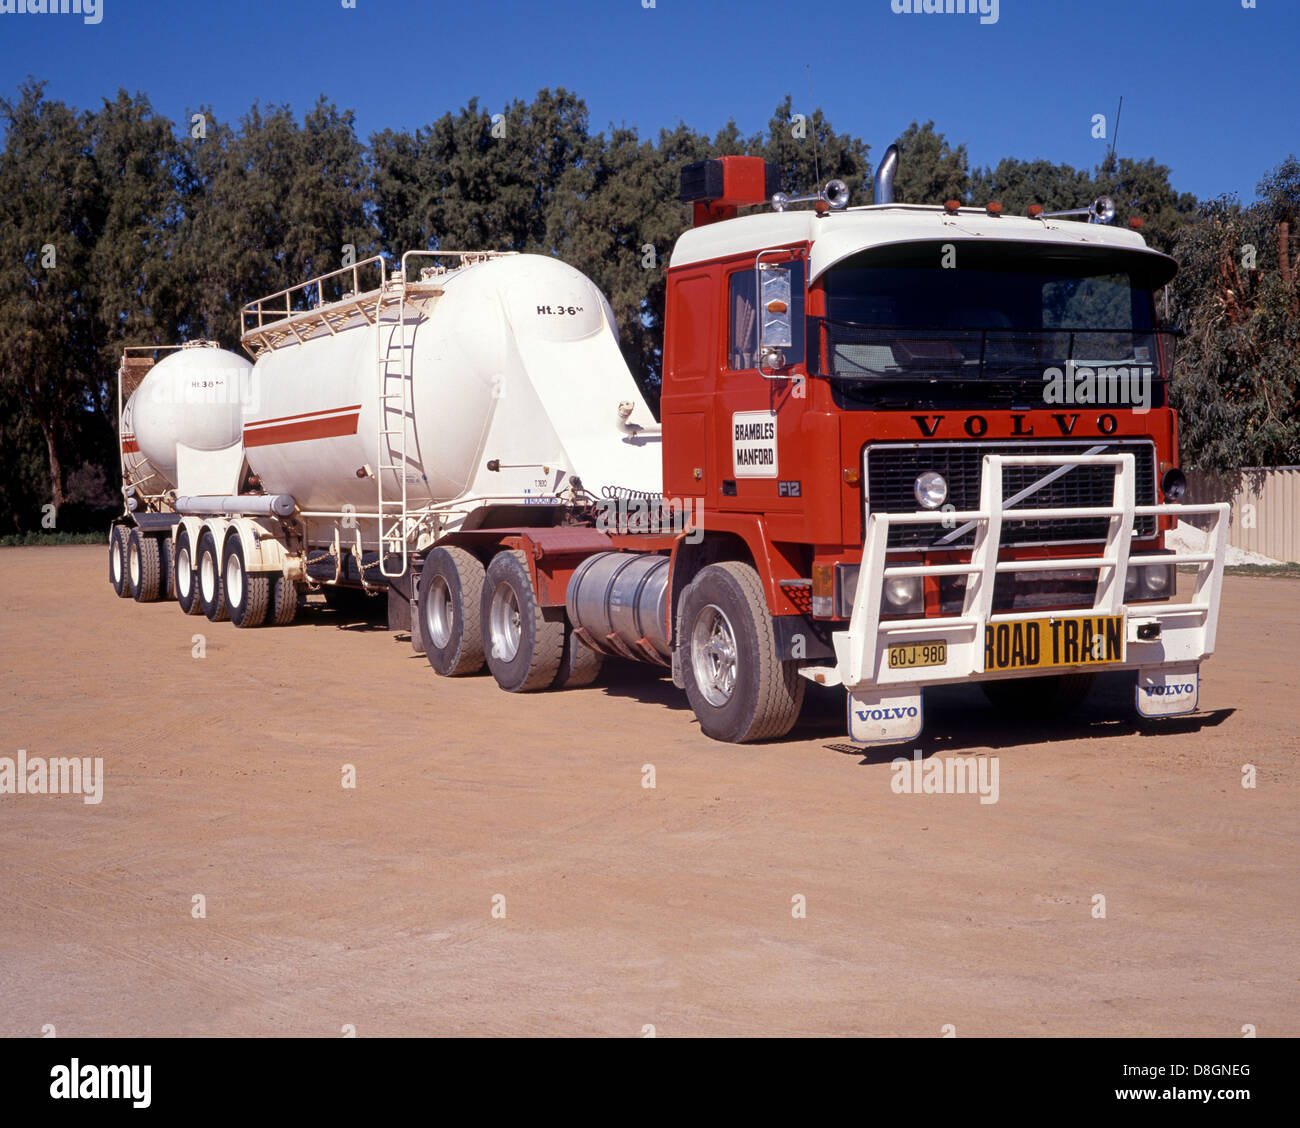 Road train – Australian name for a long truck, Western Australia Stock Photo: 56916456 - Alamy